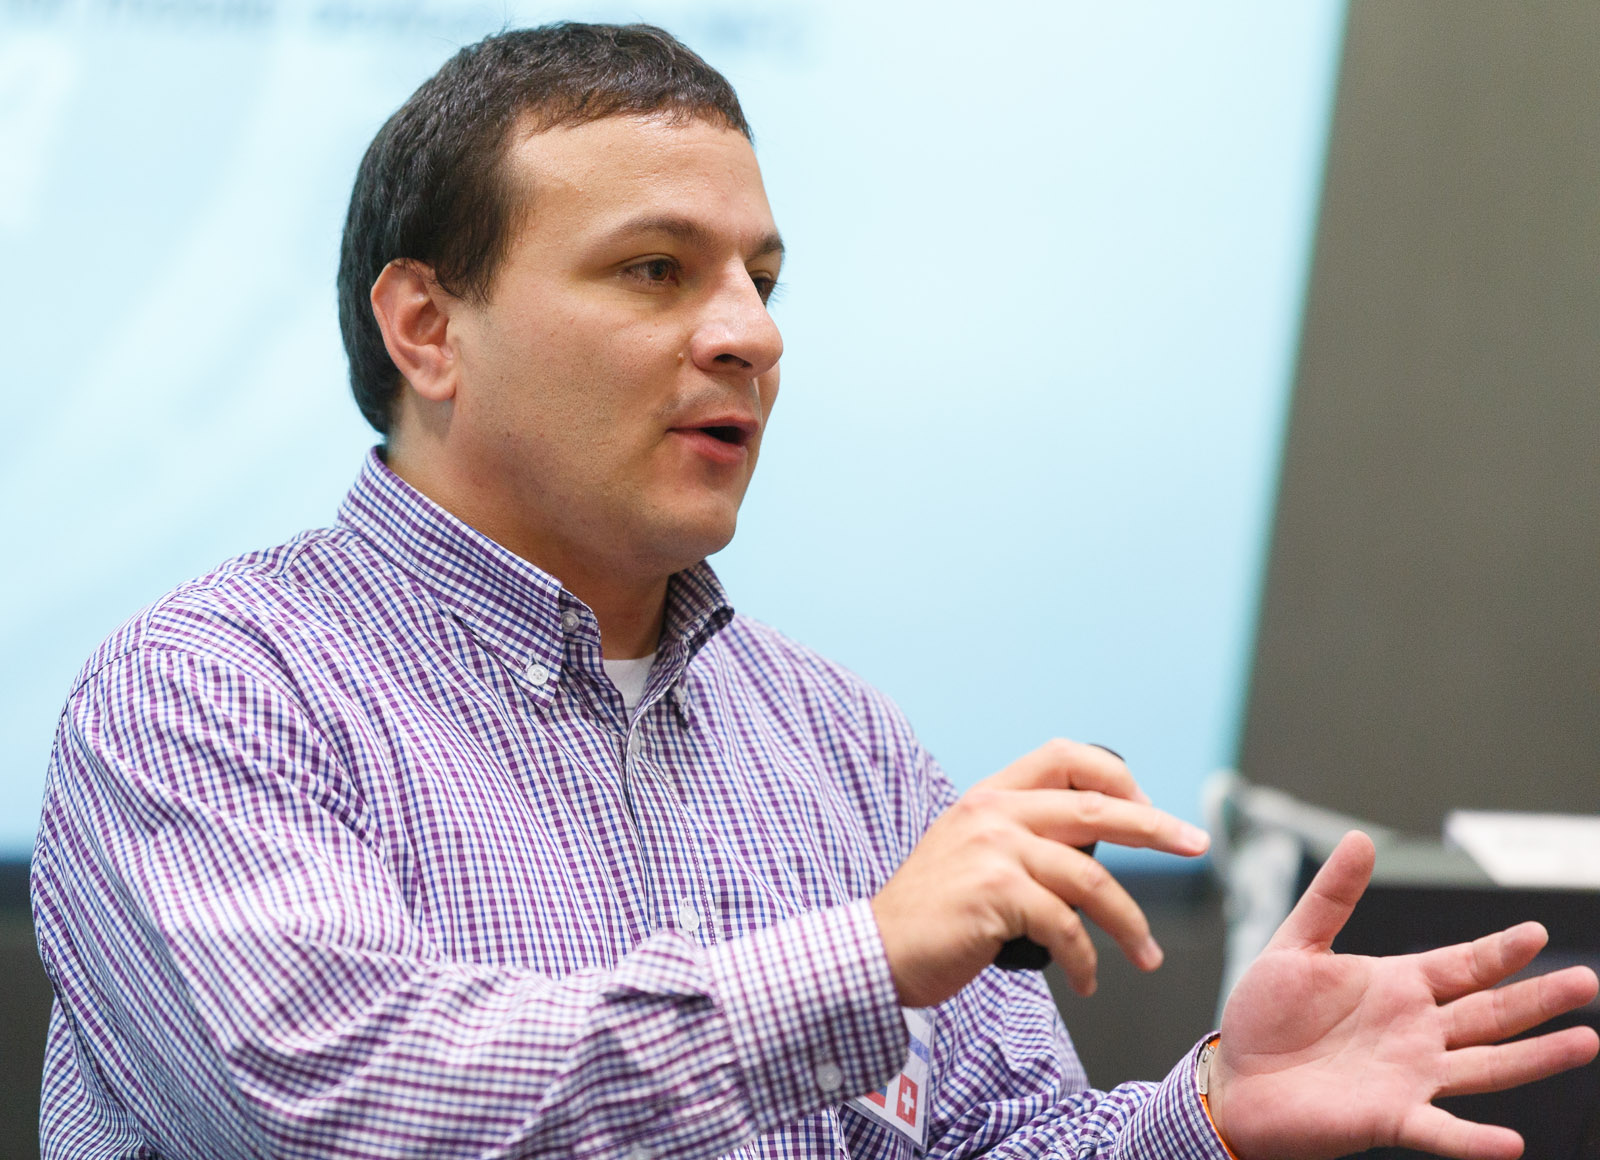 Diego Ortiz-Yepes of IBM Research in Zurich describes his approach for dual-factor authentication using mobile devices.